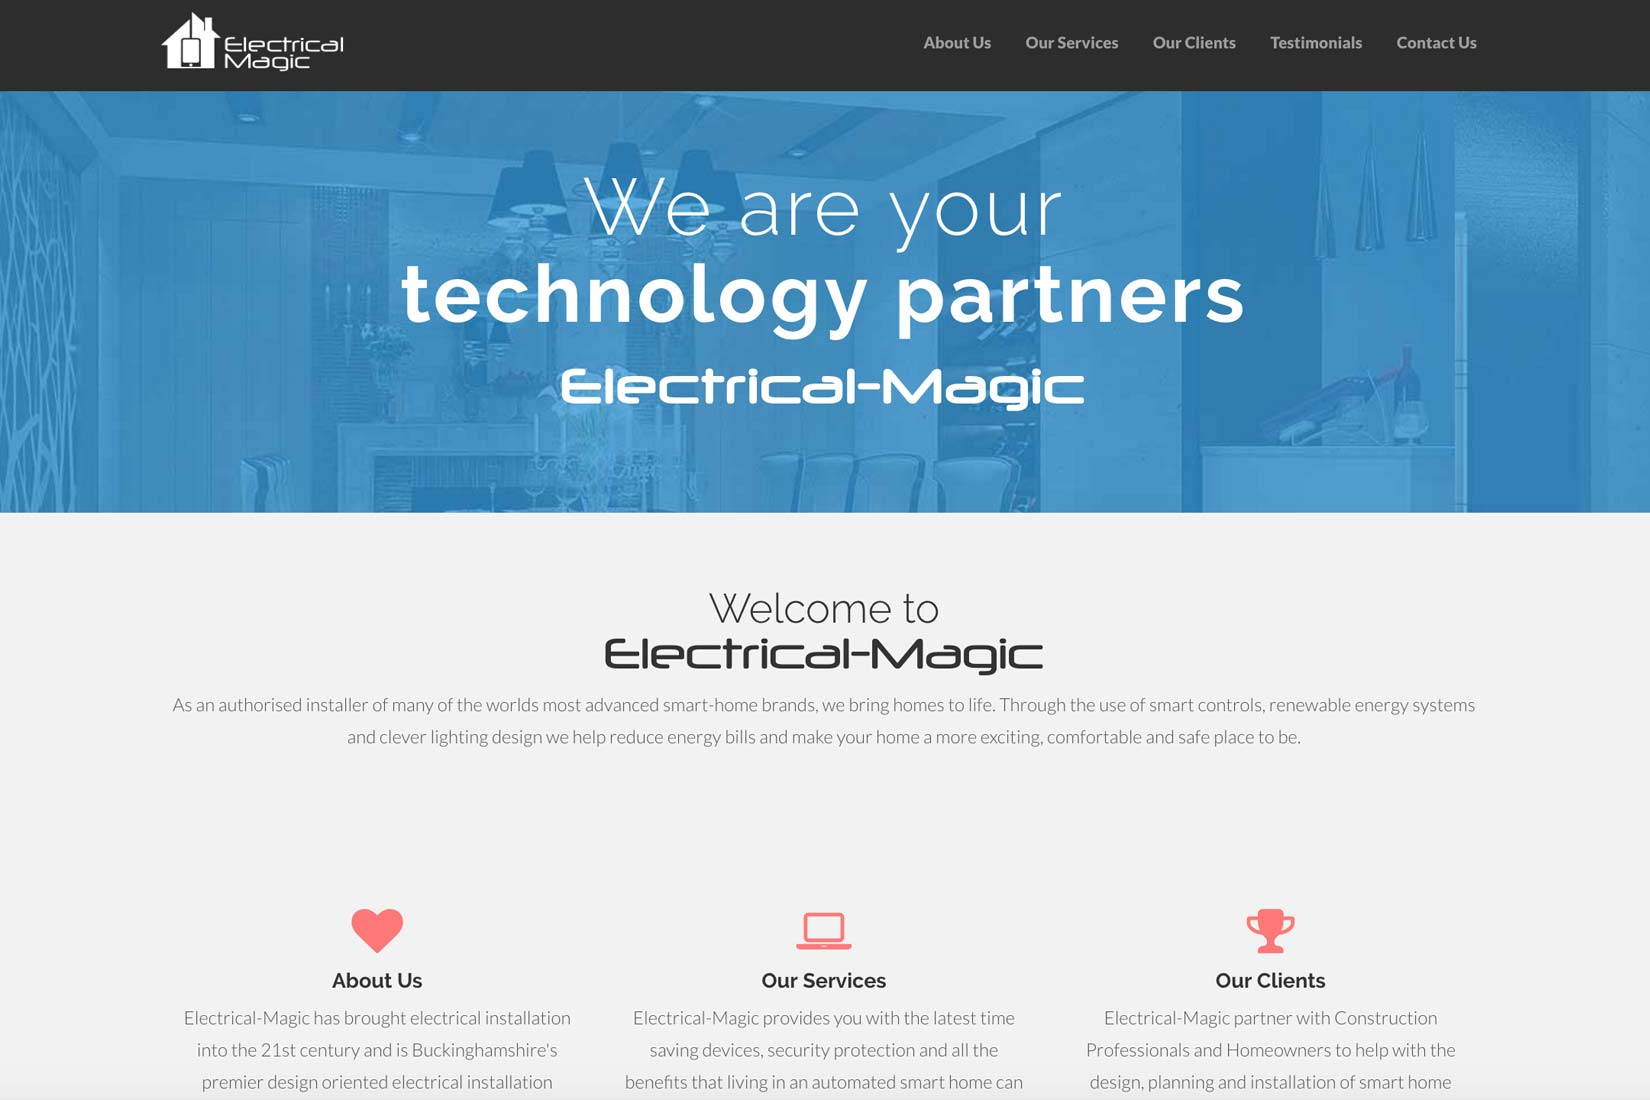 Electrical Magic Home Page built by Presto Web Design